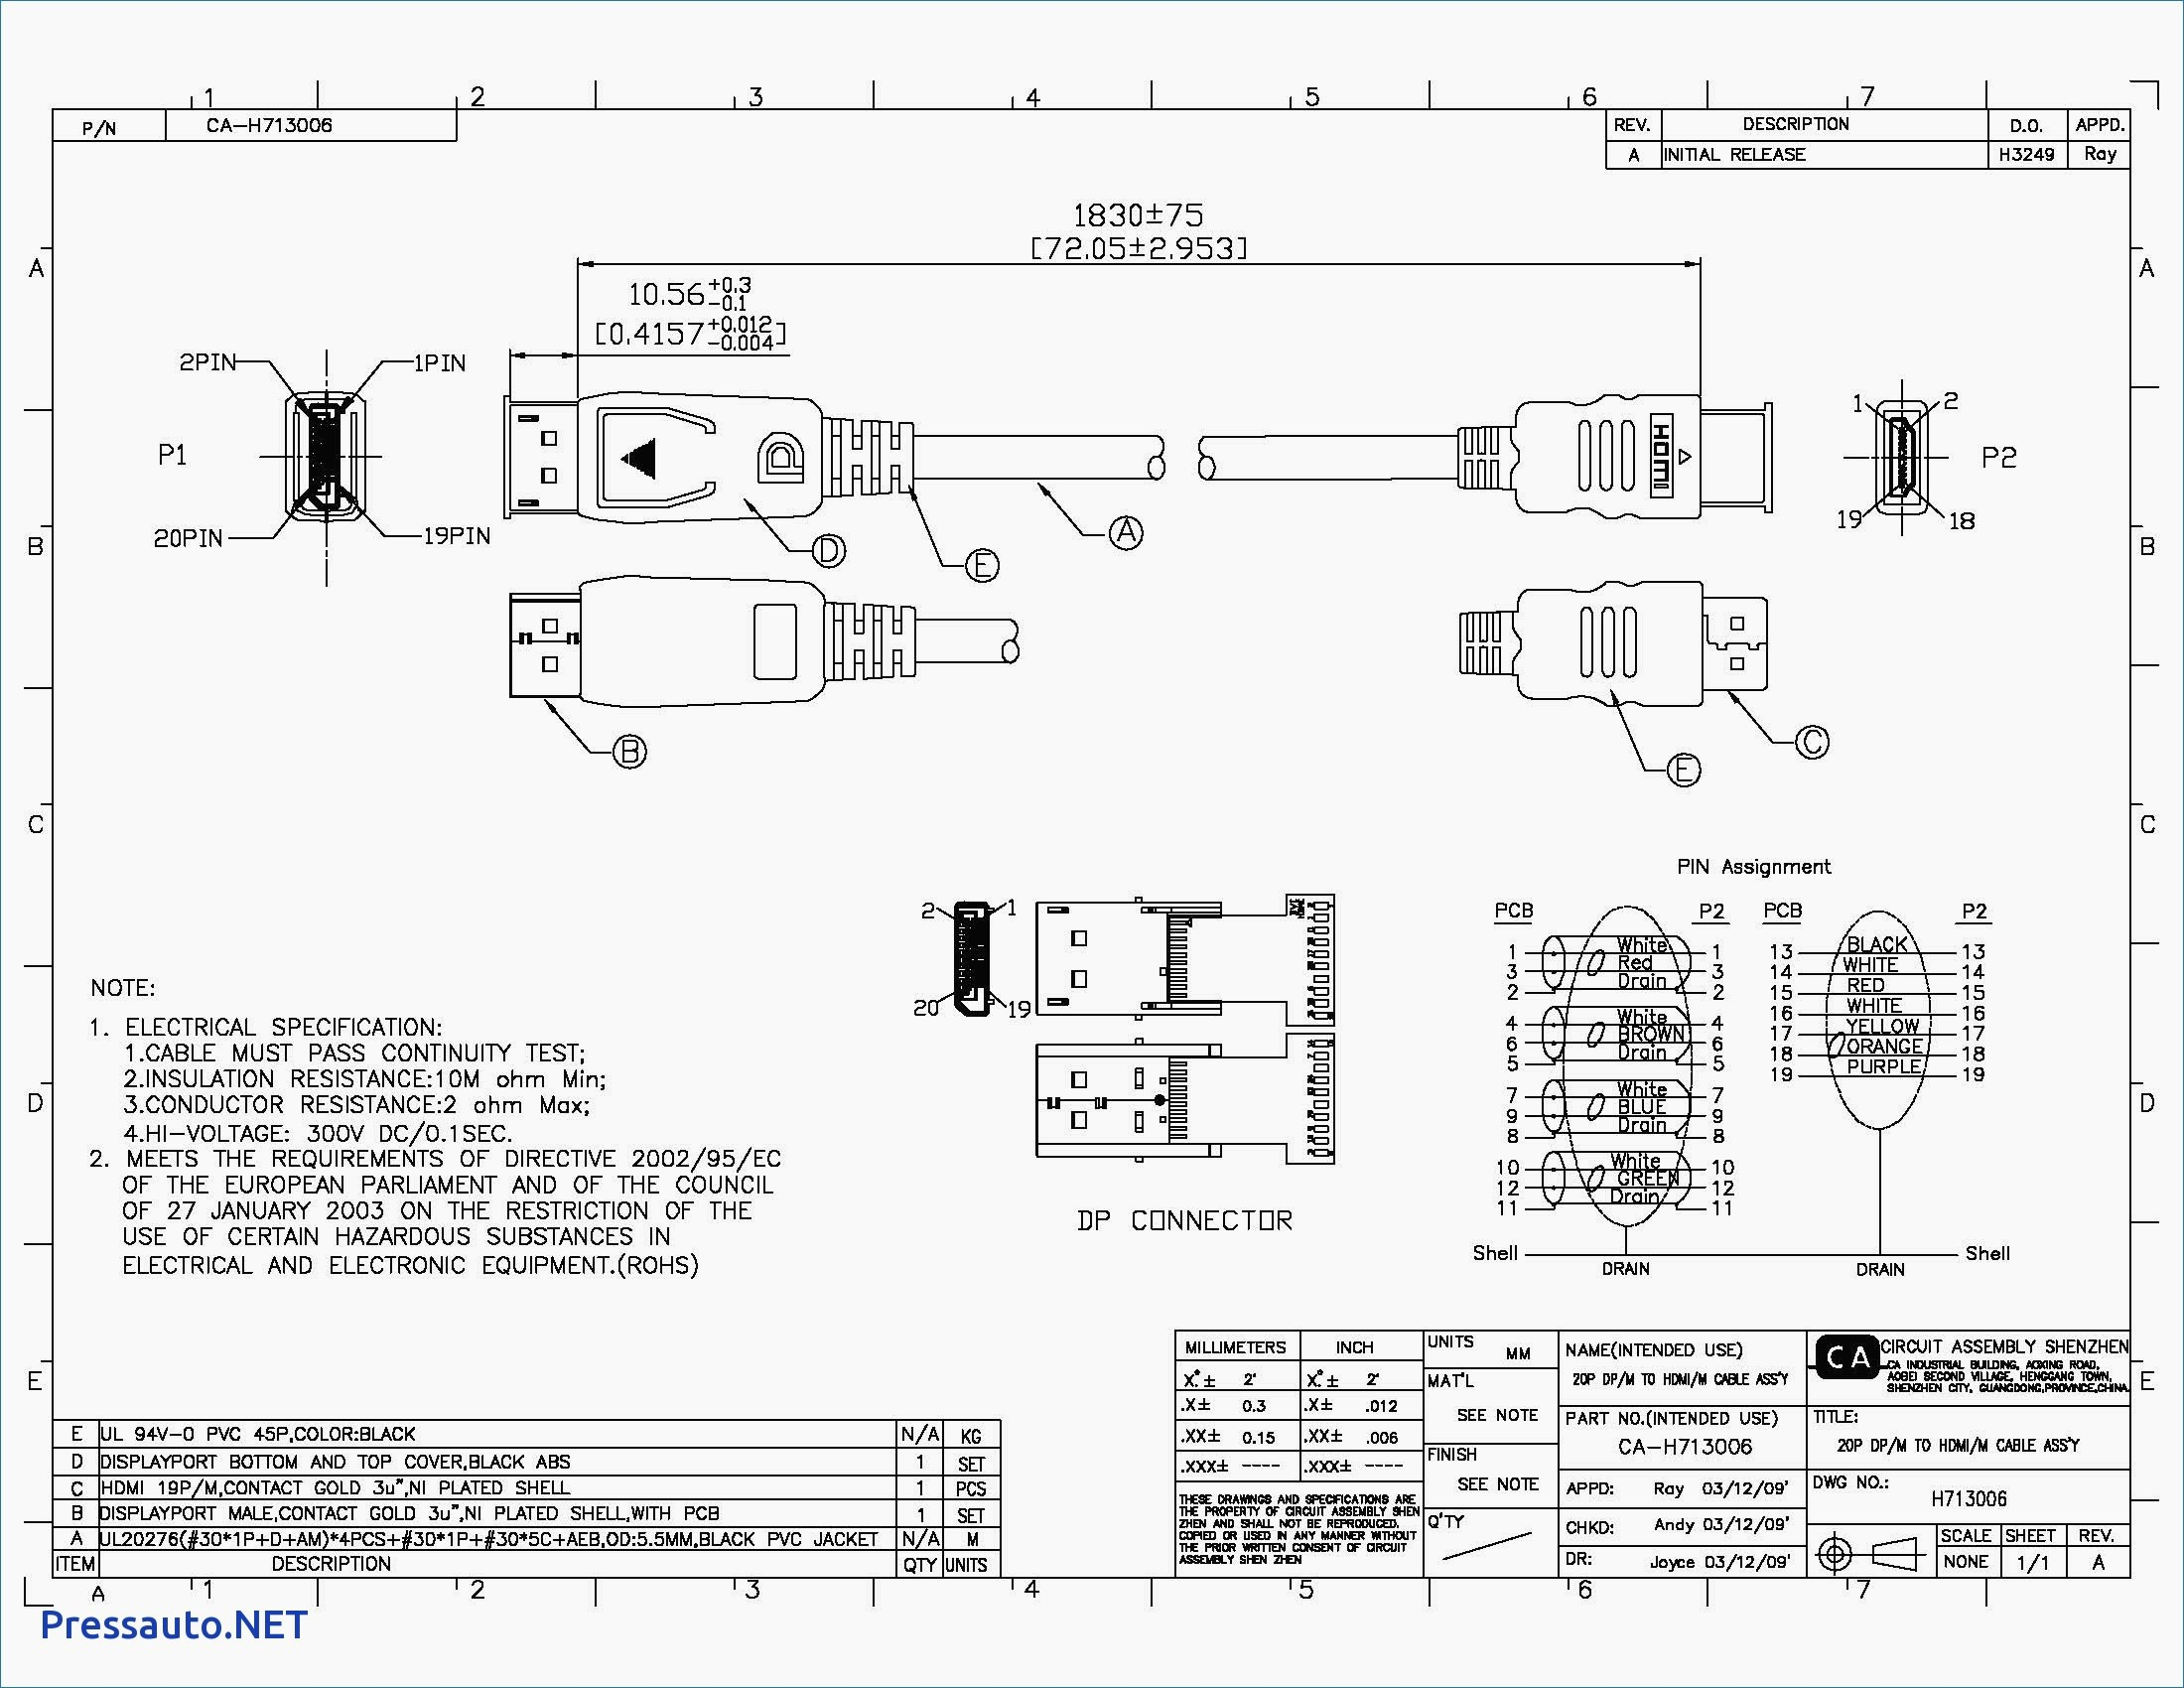 Pelco Security Camera Wiring Diagram For - Schematic Diagrams